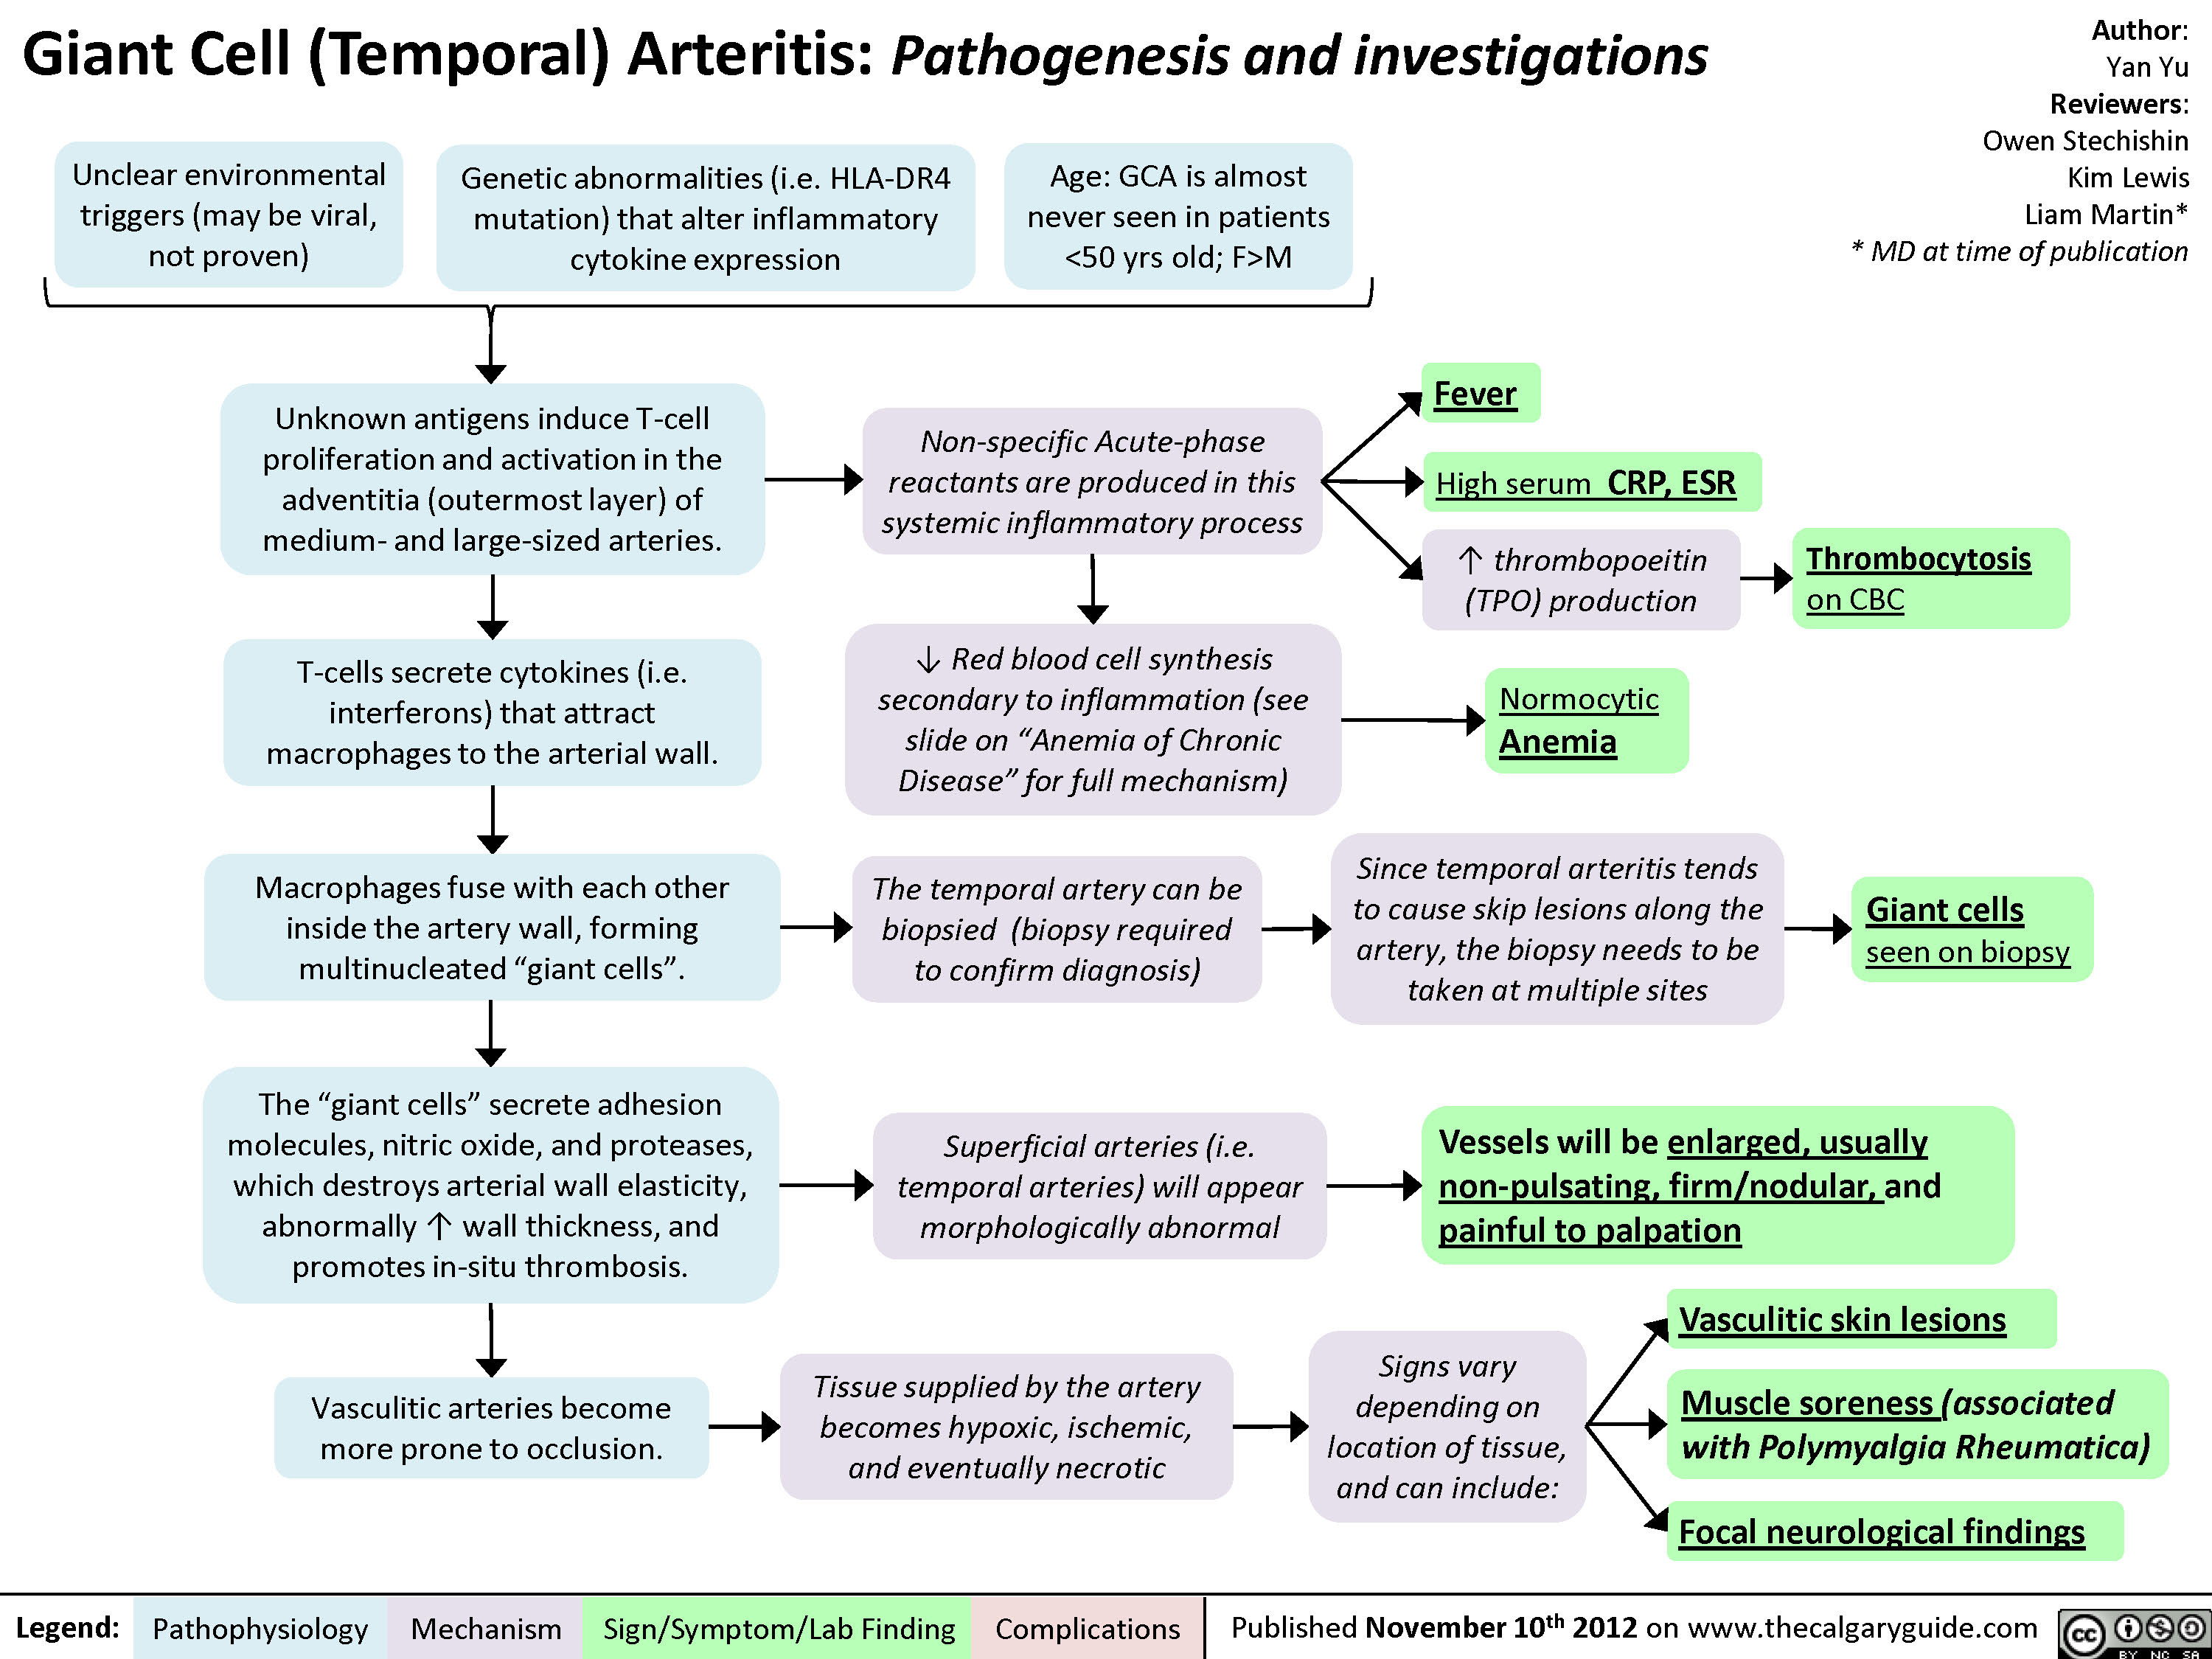 Giant Cell (Temporal) Arteritis - Pathogenesis and investigations